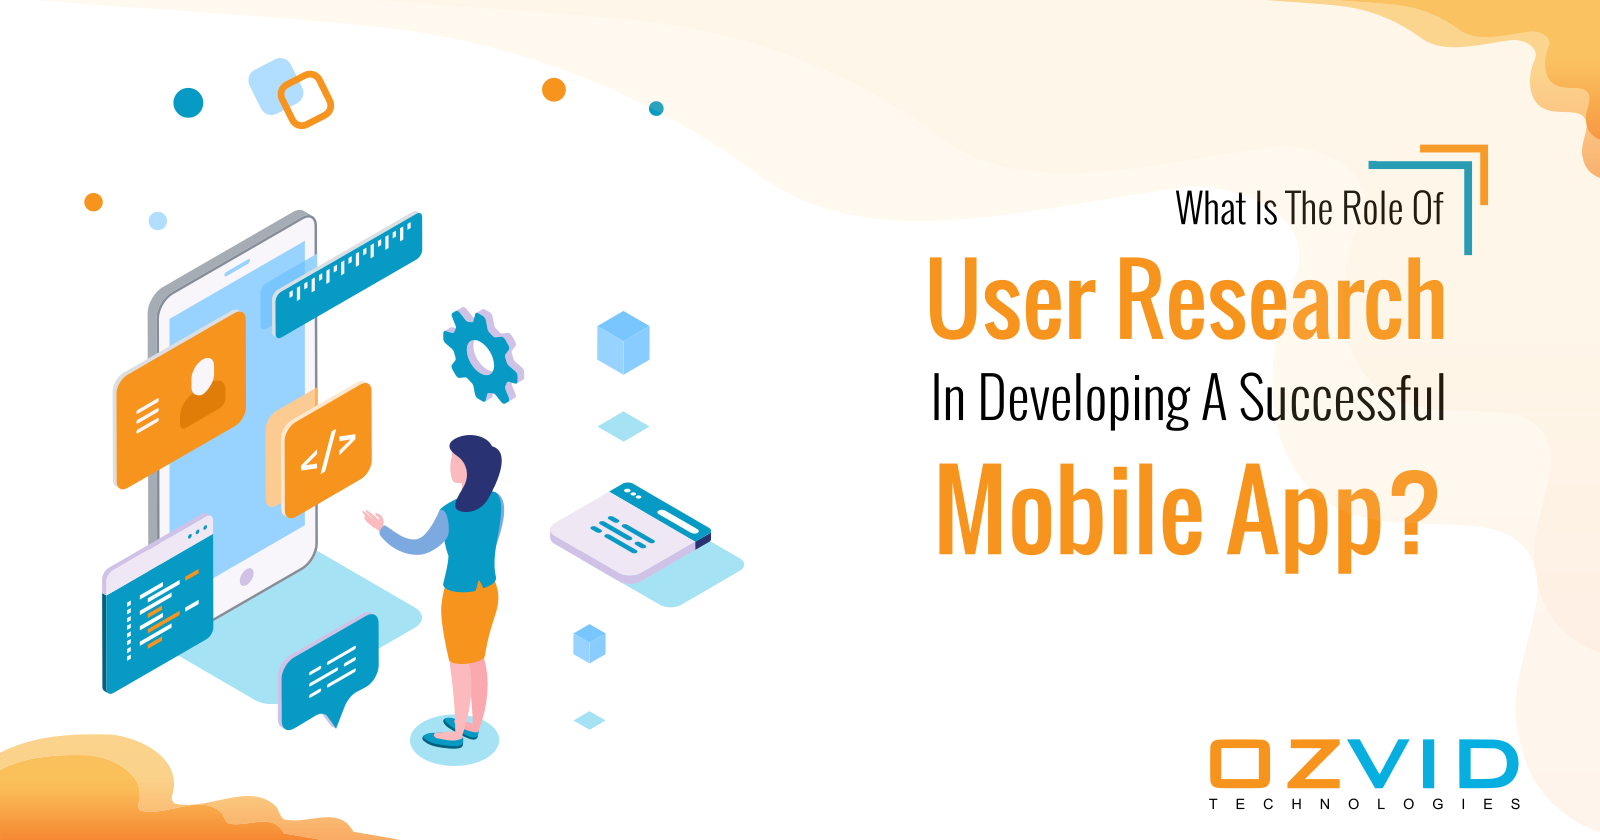 What Is The Role Of User Research In Developing A Successful Mobile App?